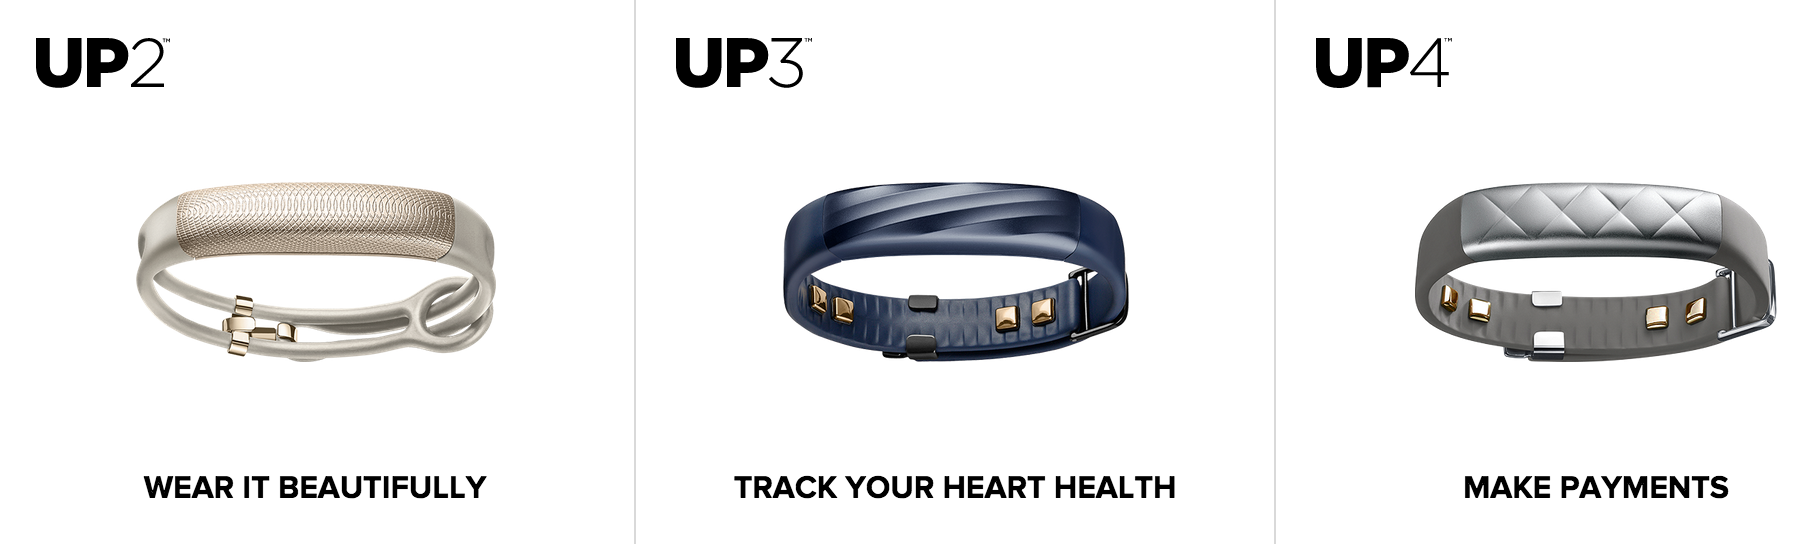 jawbone-line-up-fitness-trackers